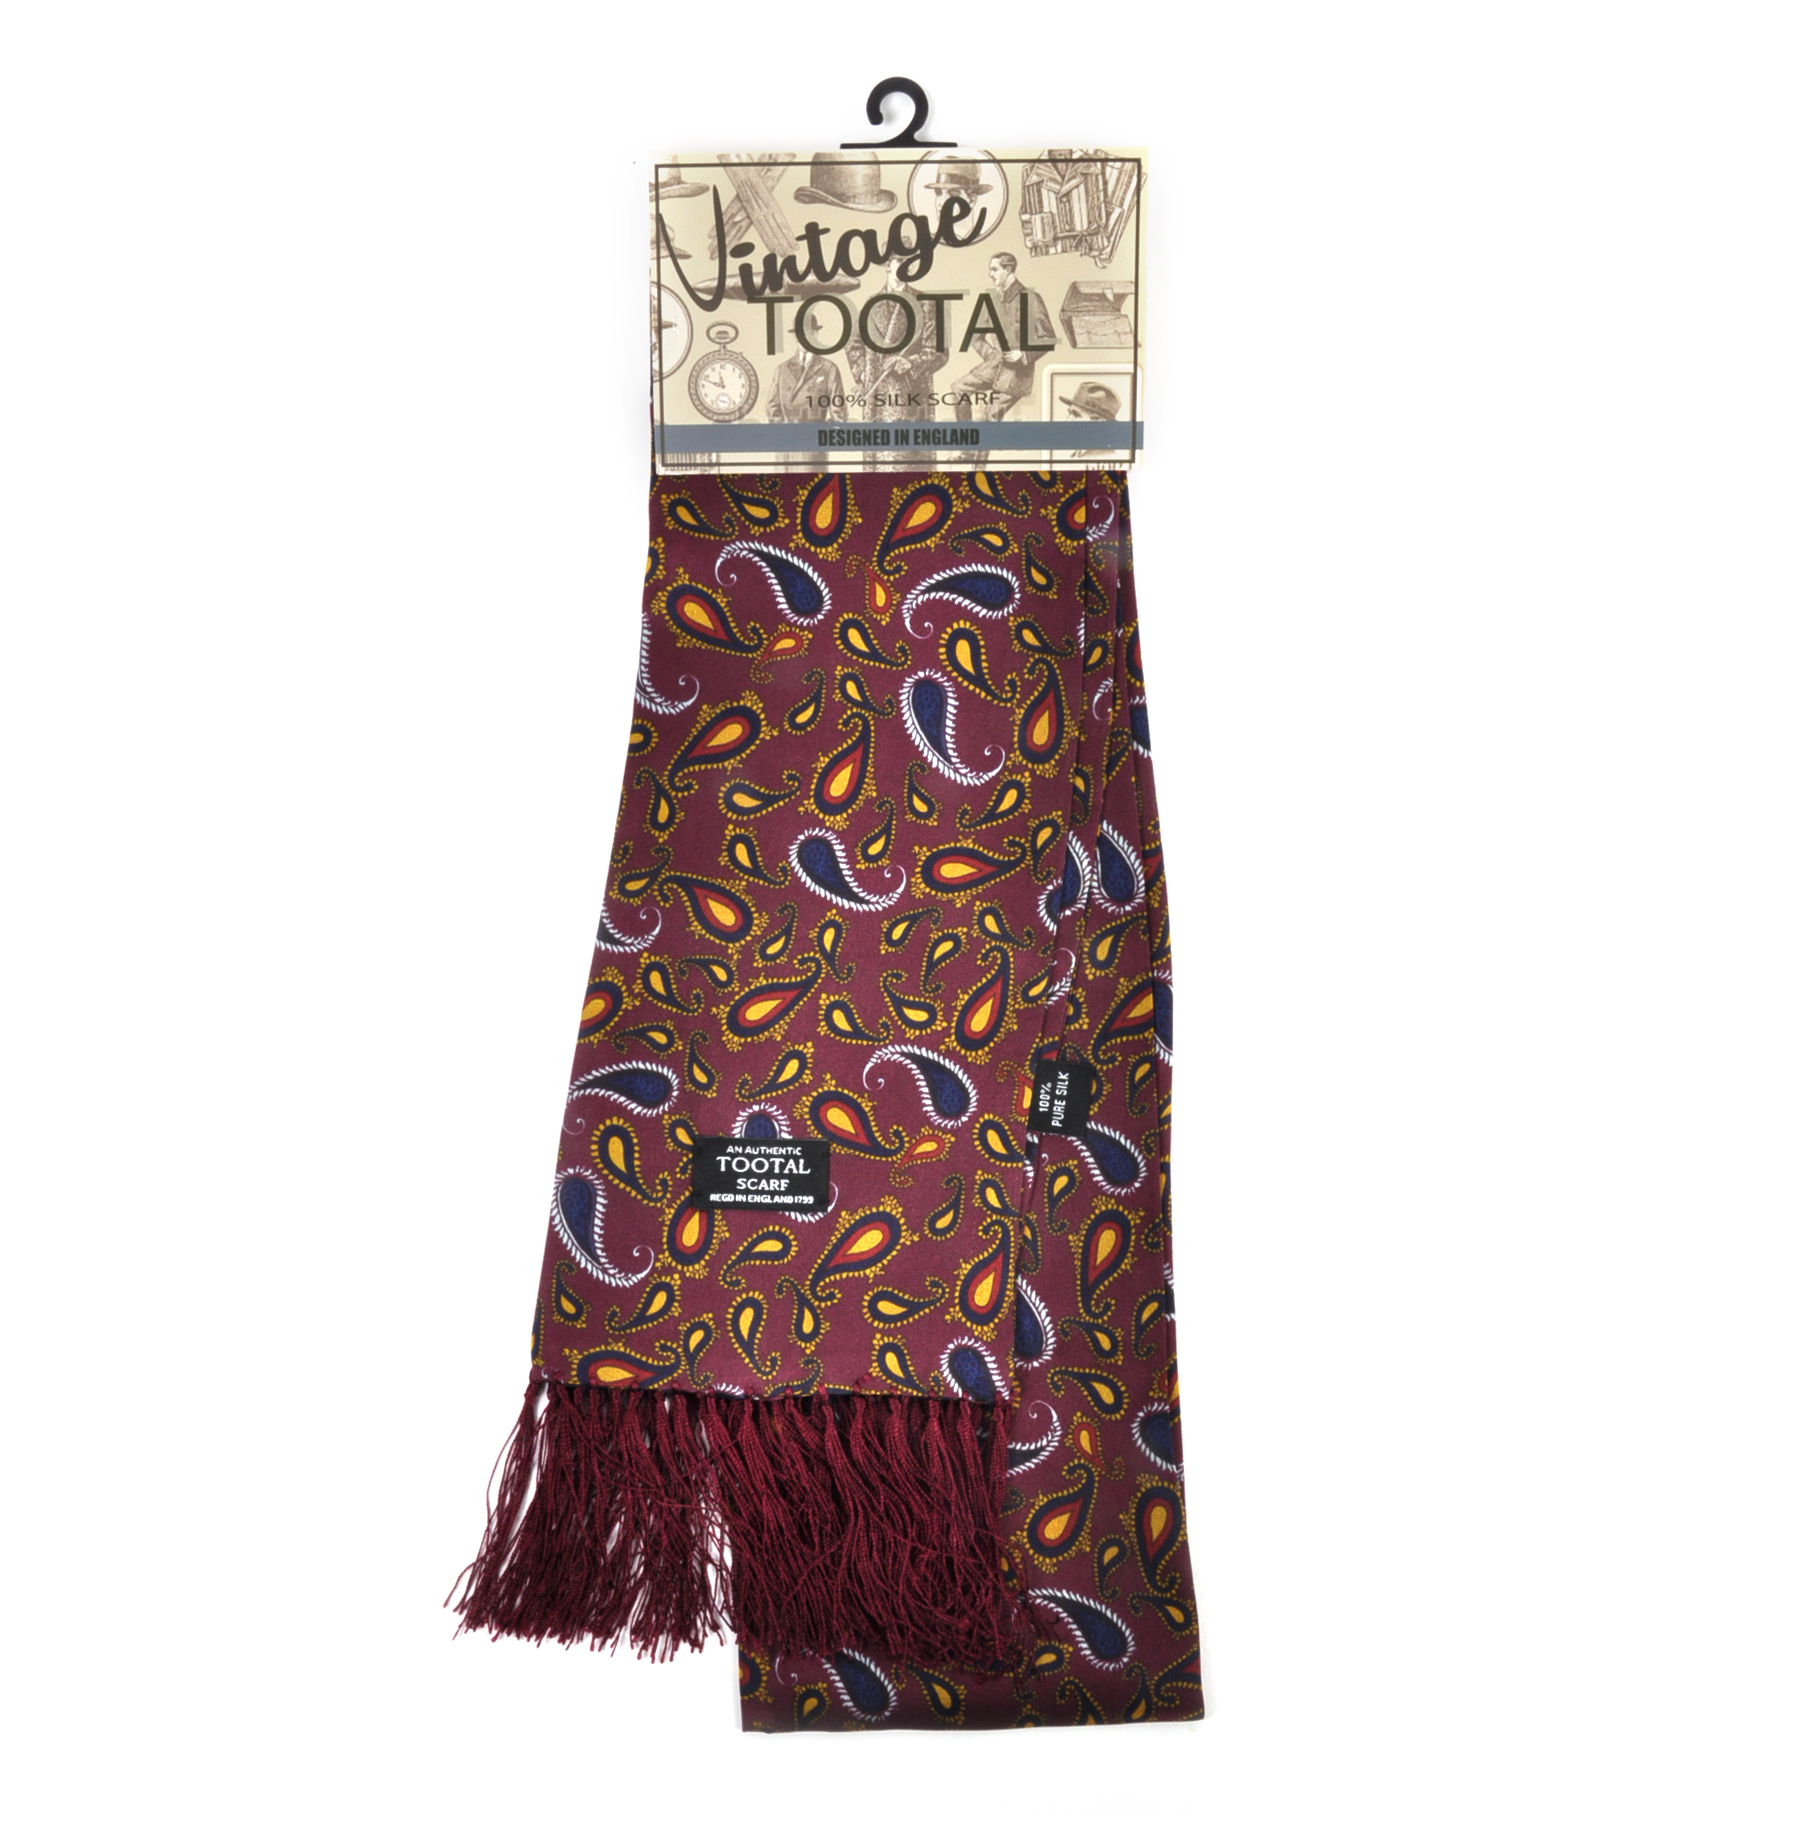 0d23889ebba Modern Paisley Print Burgundy Scarf - Long - 100% Silk Scarf from Vintage  Tootal